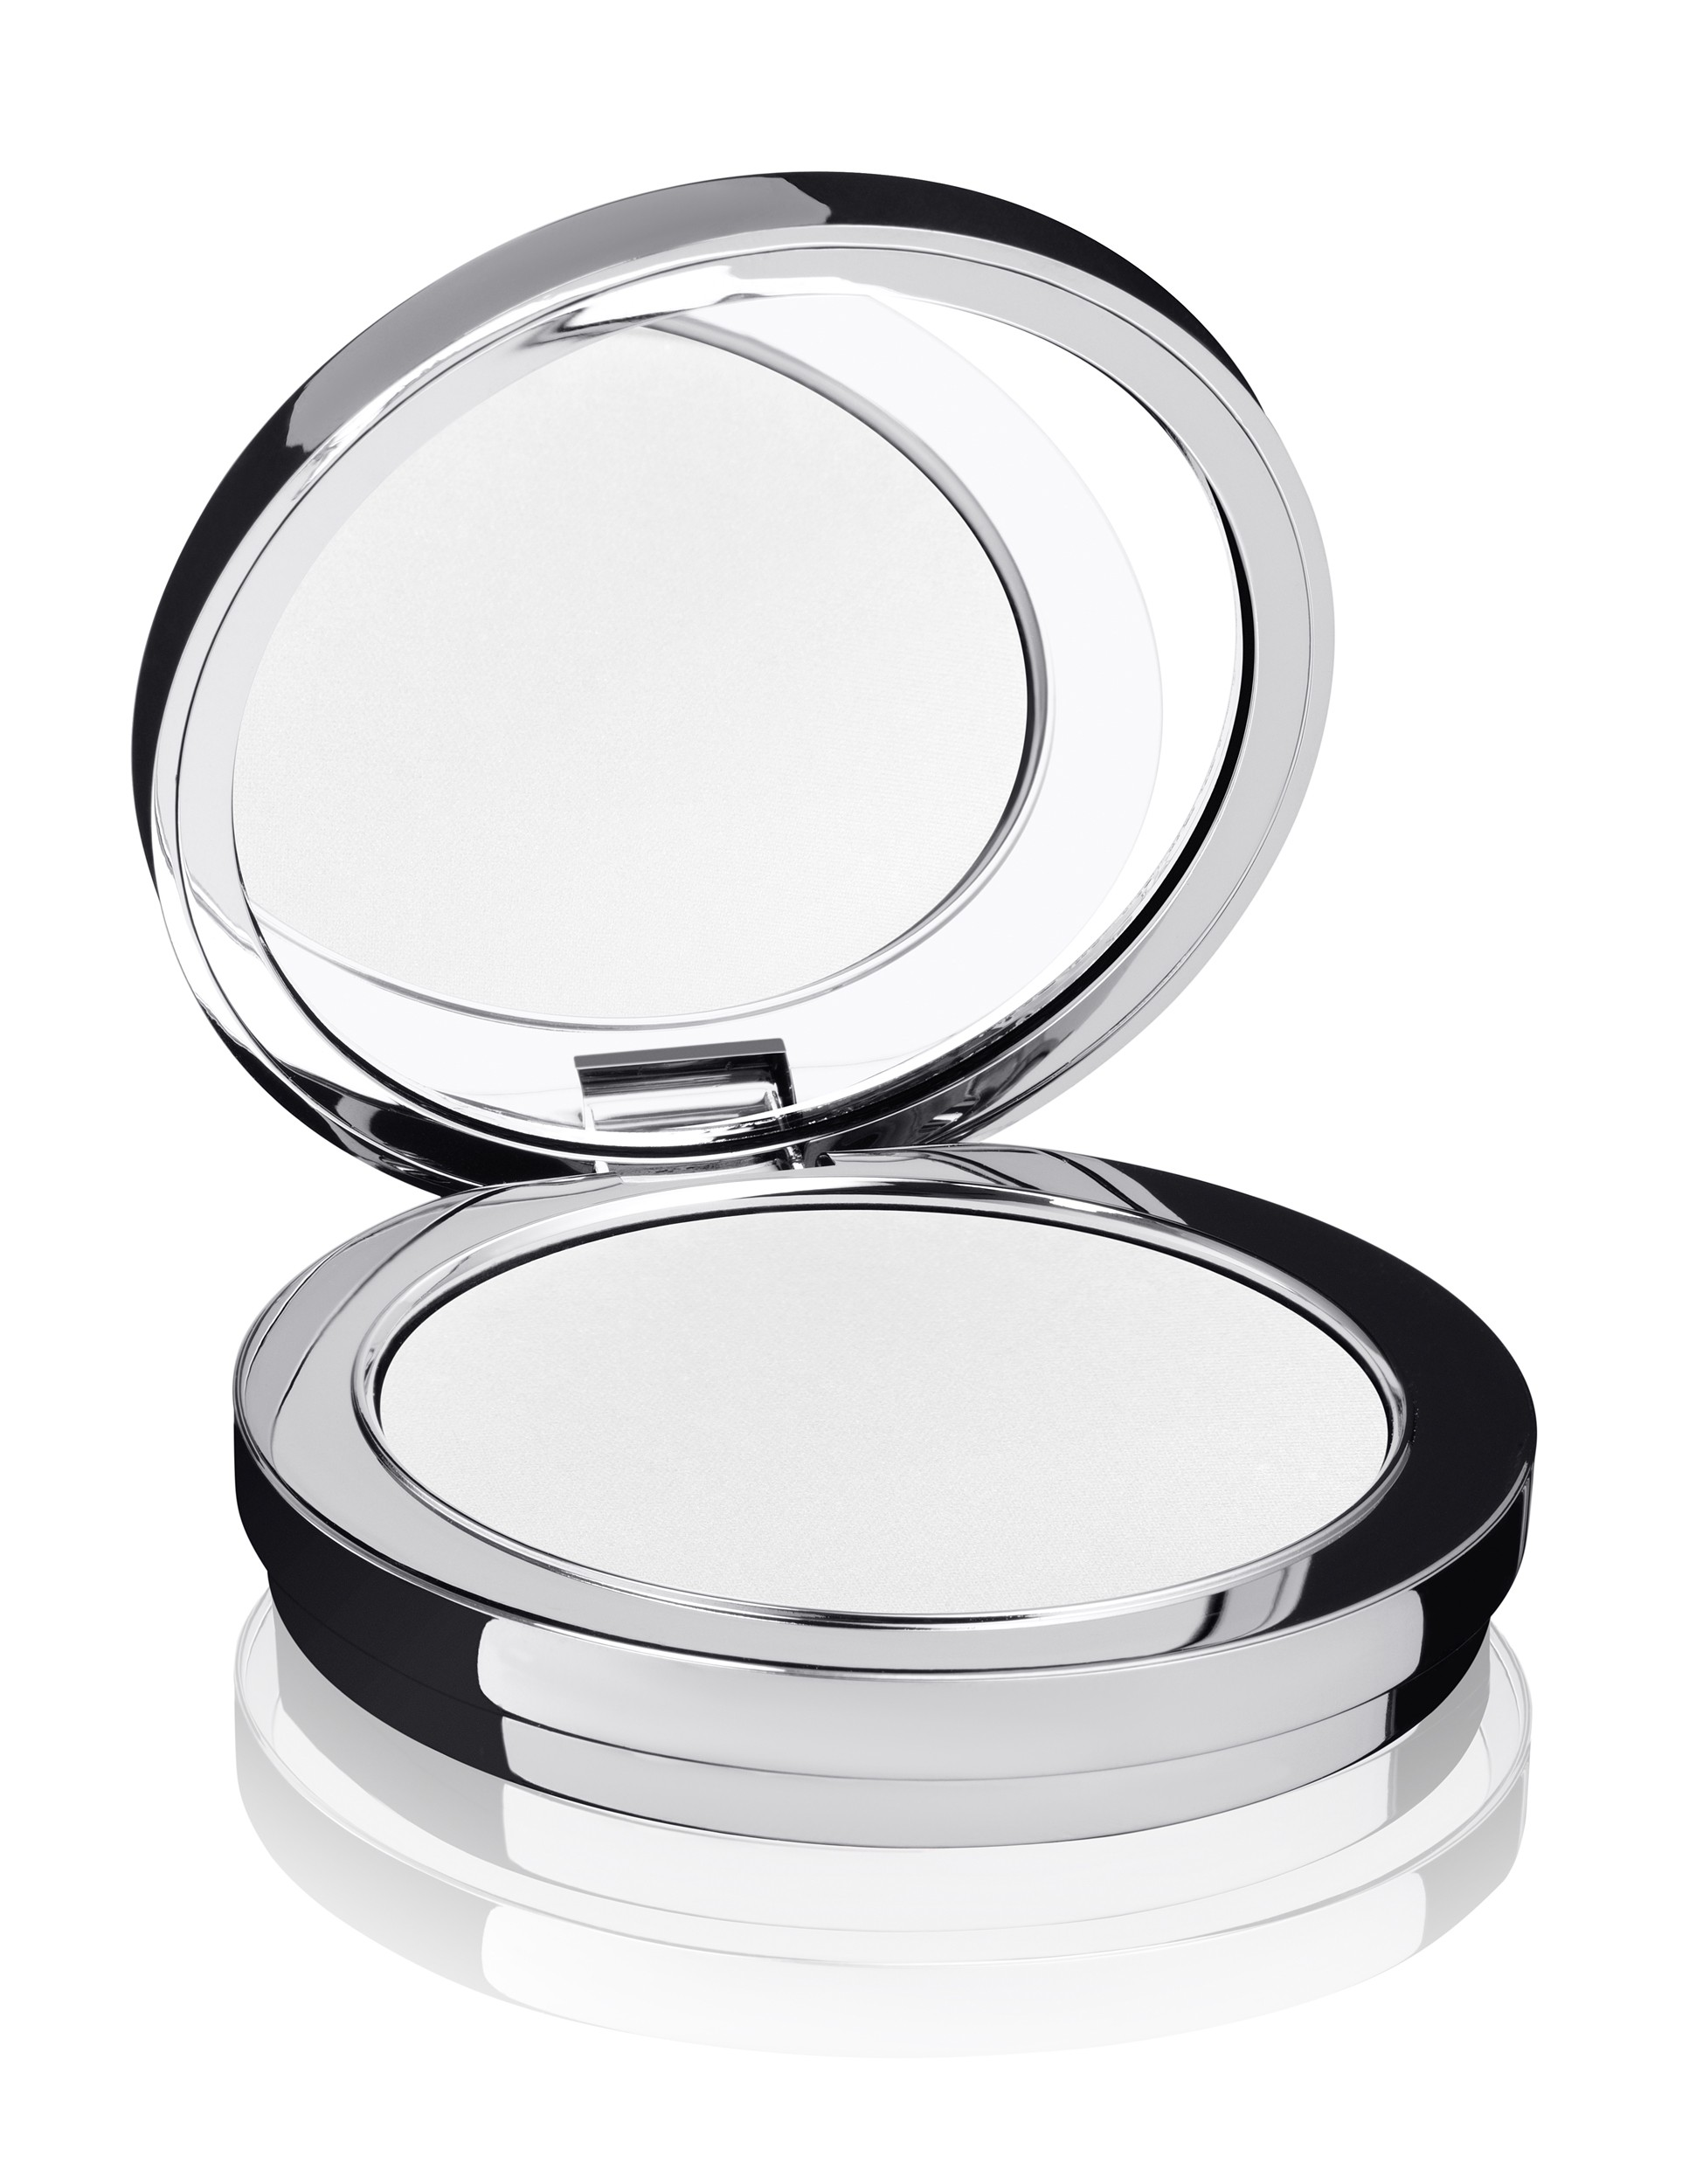 1933x2500 Buy Rodial Instaglam Compact Deluxe Translucent Hd Powder Online